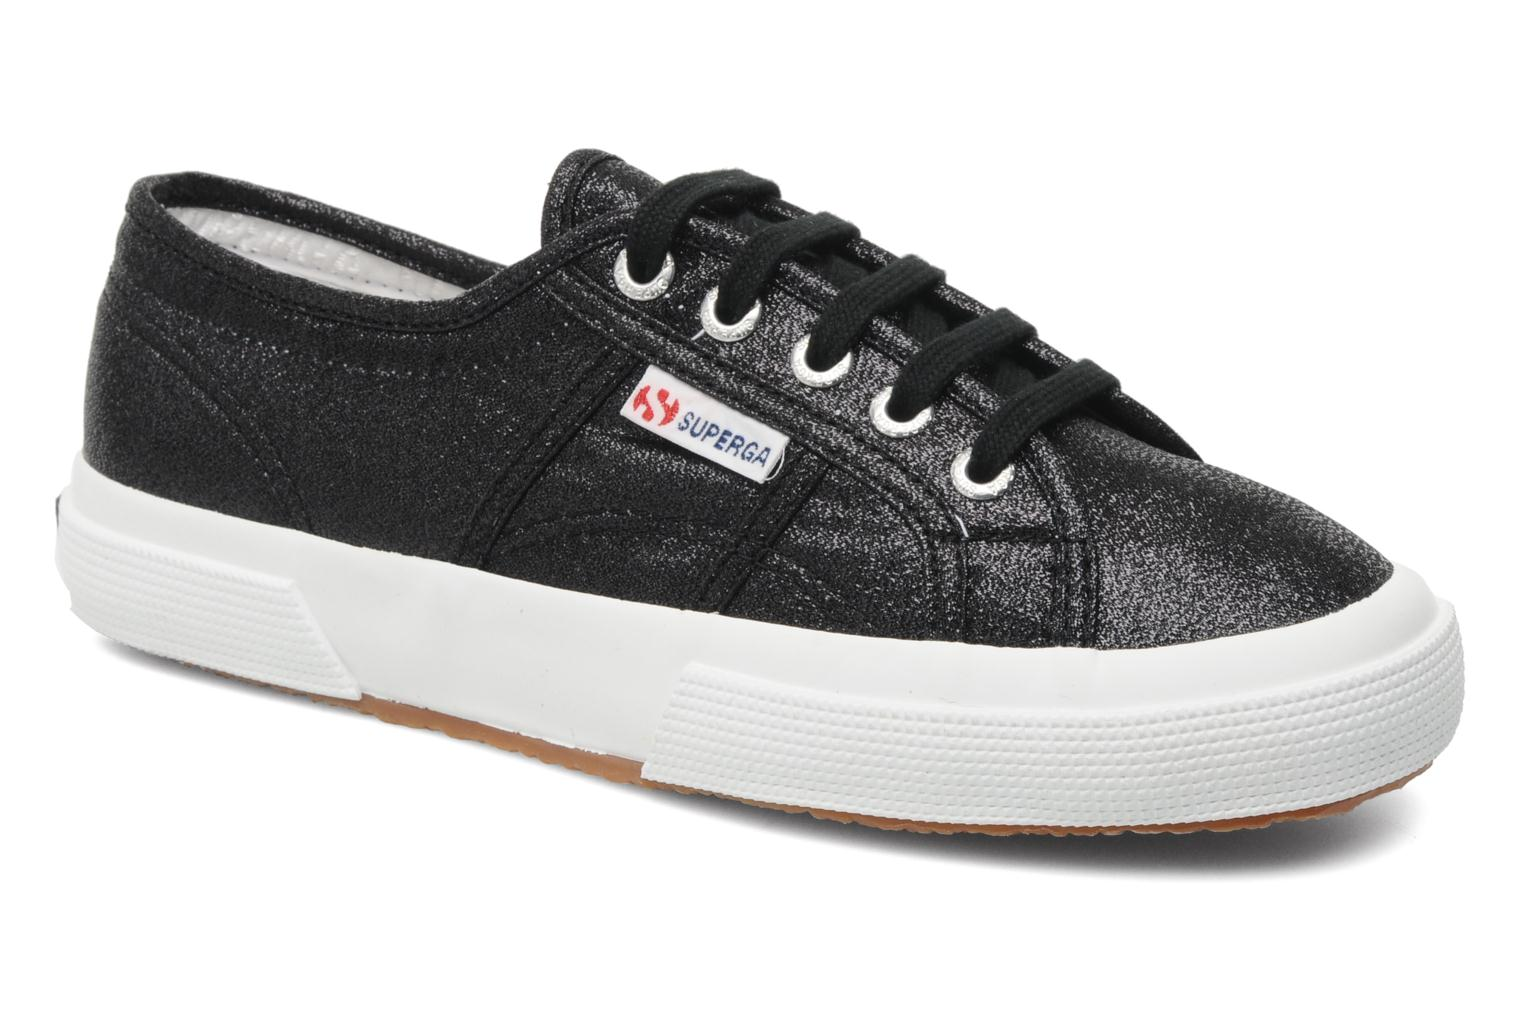 Donna Superga 2750 Lame W Sneakers Nero